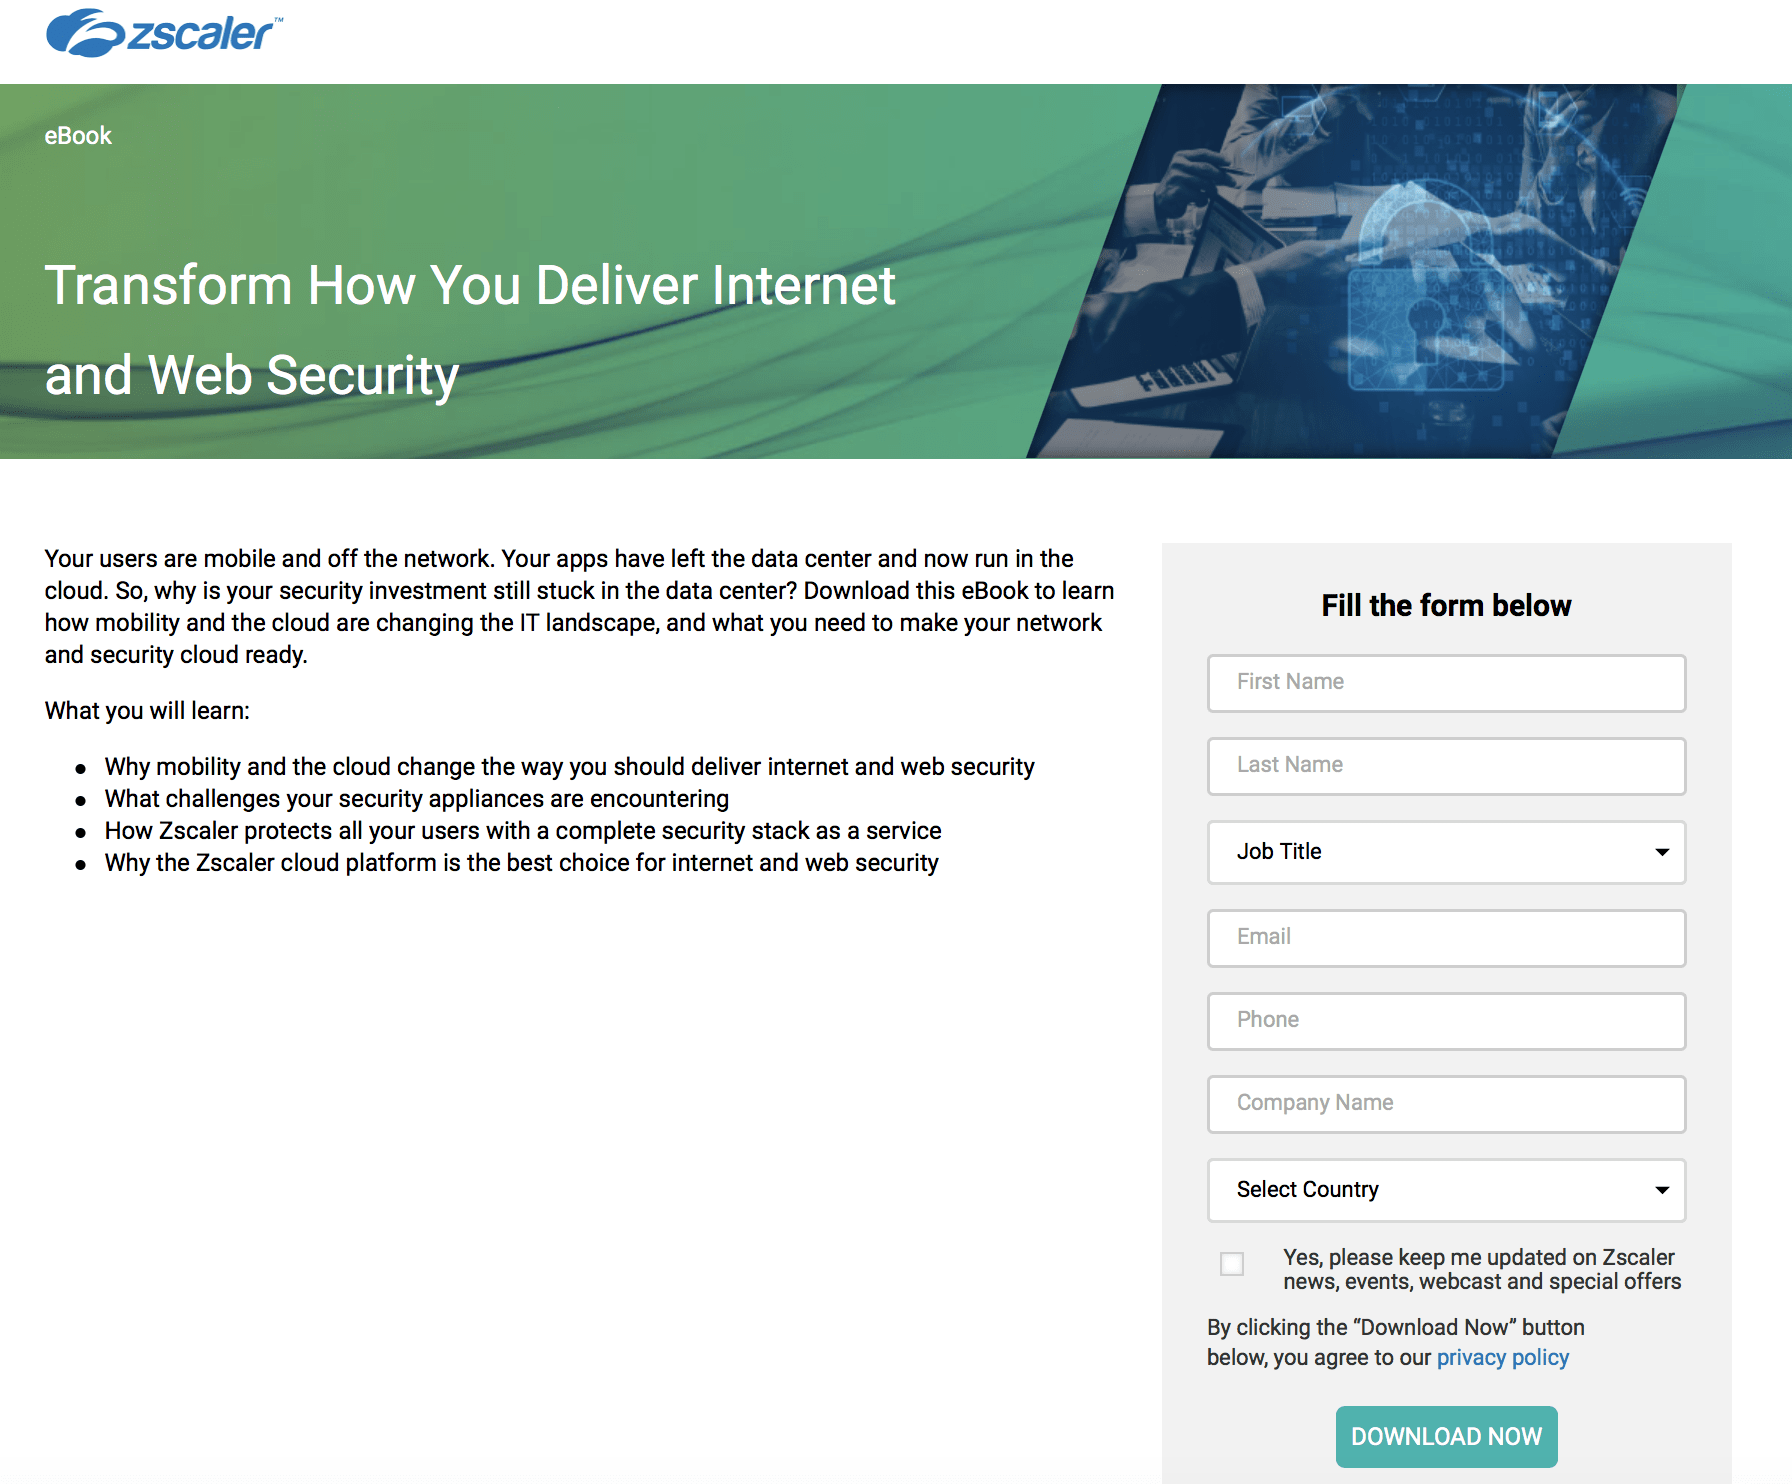 Zscaler PPC landing page